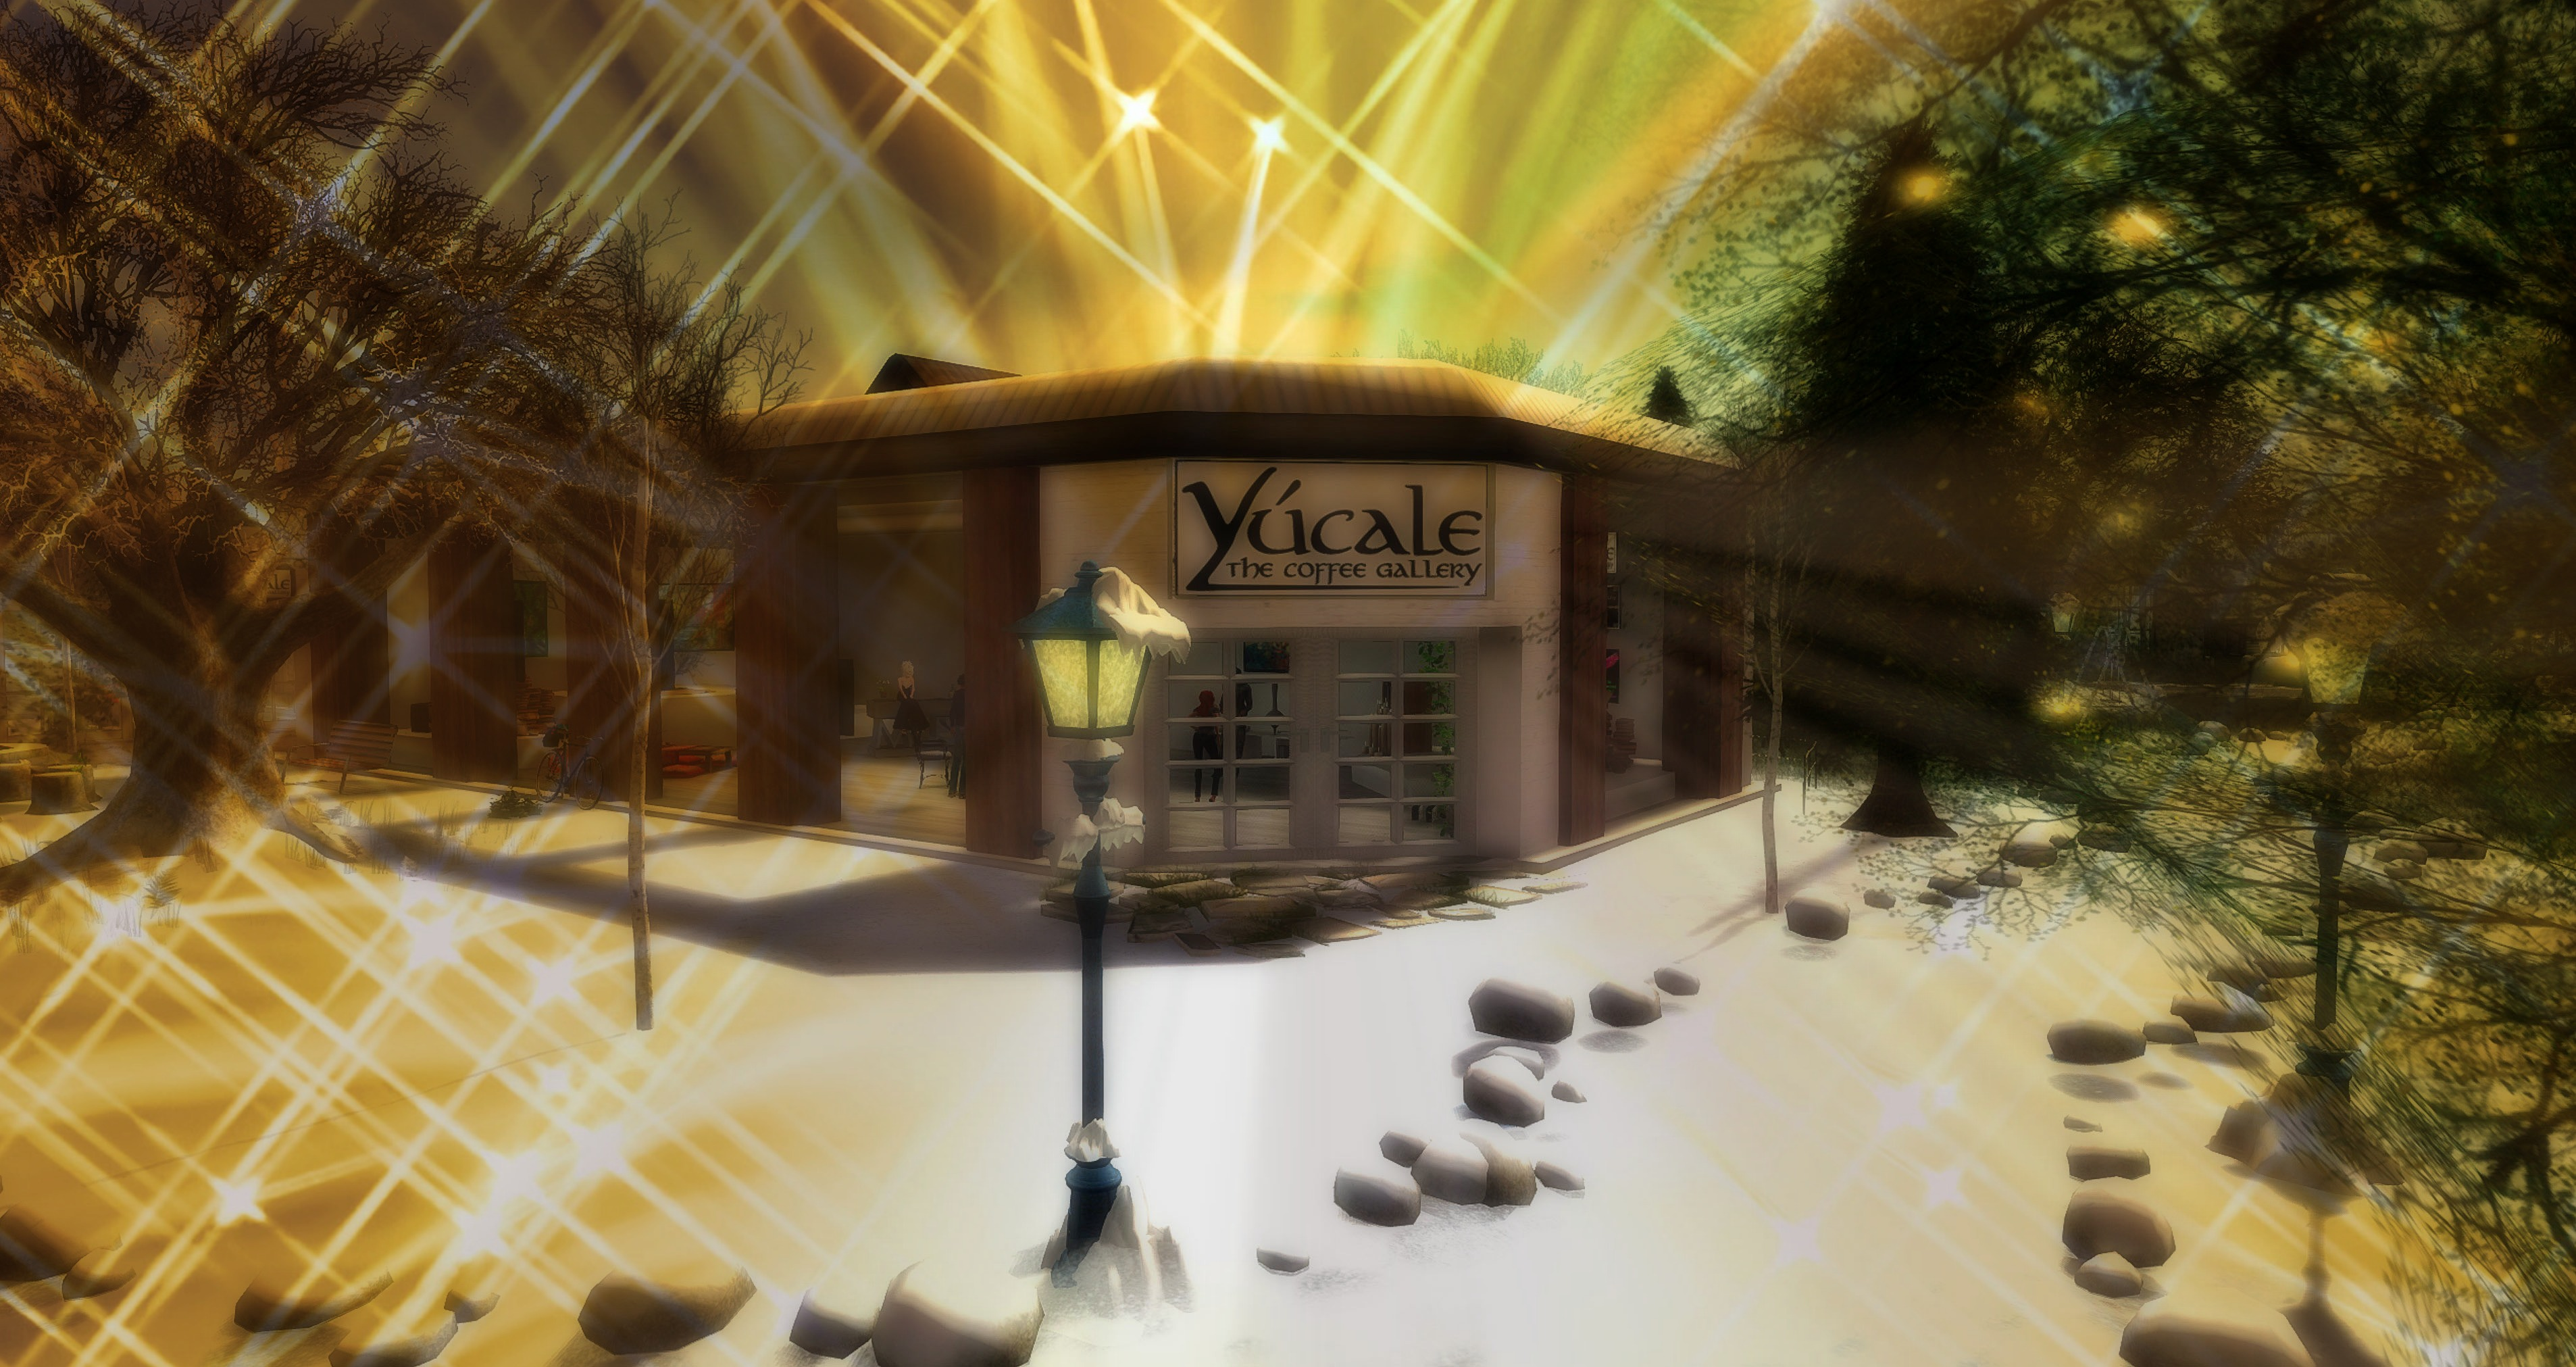 Cafe Yucale